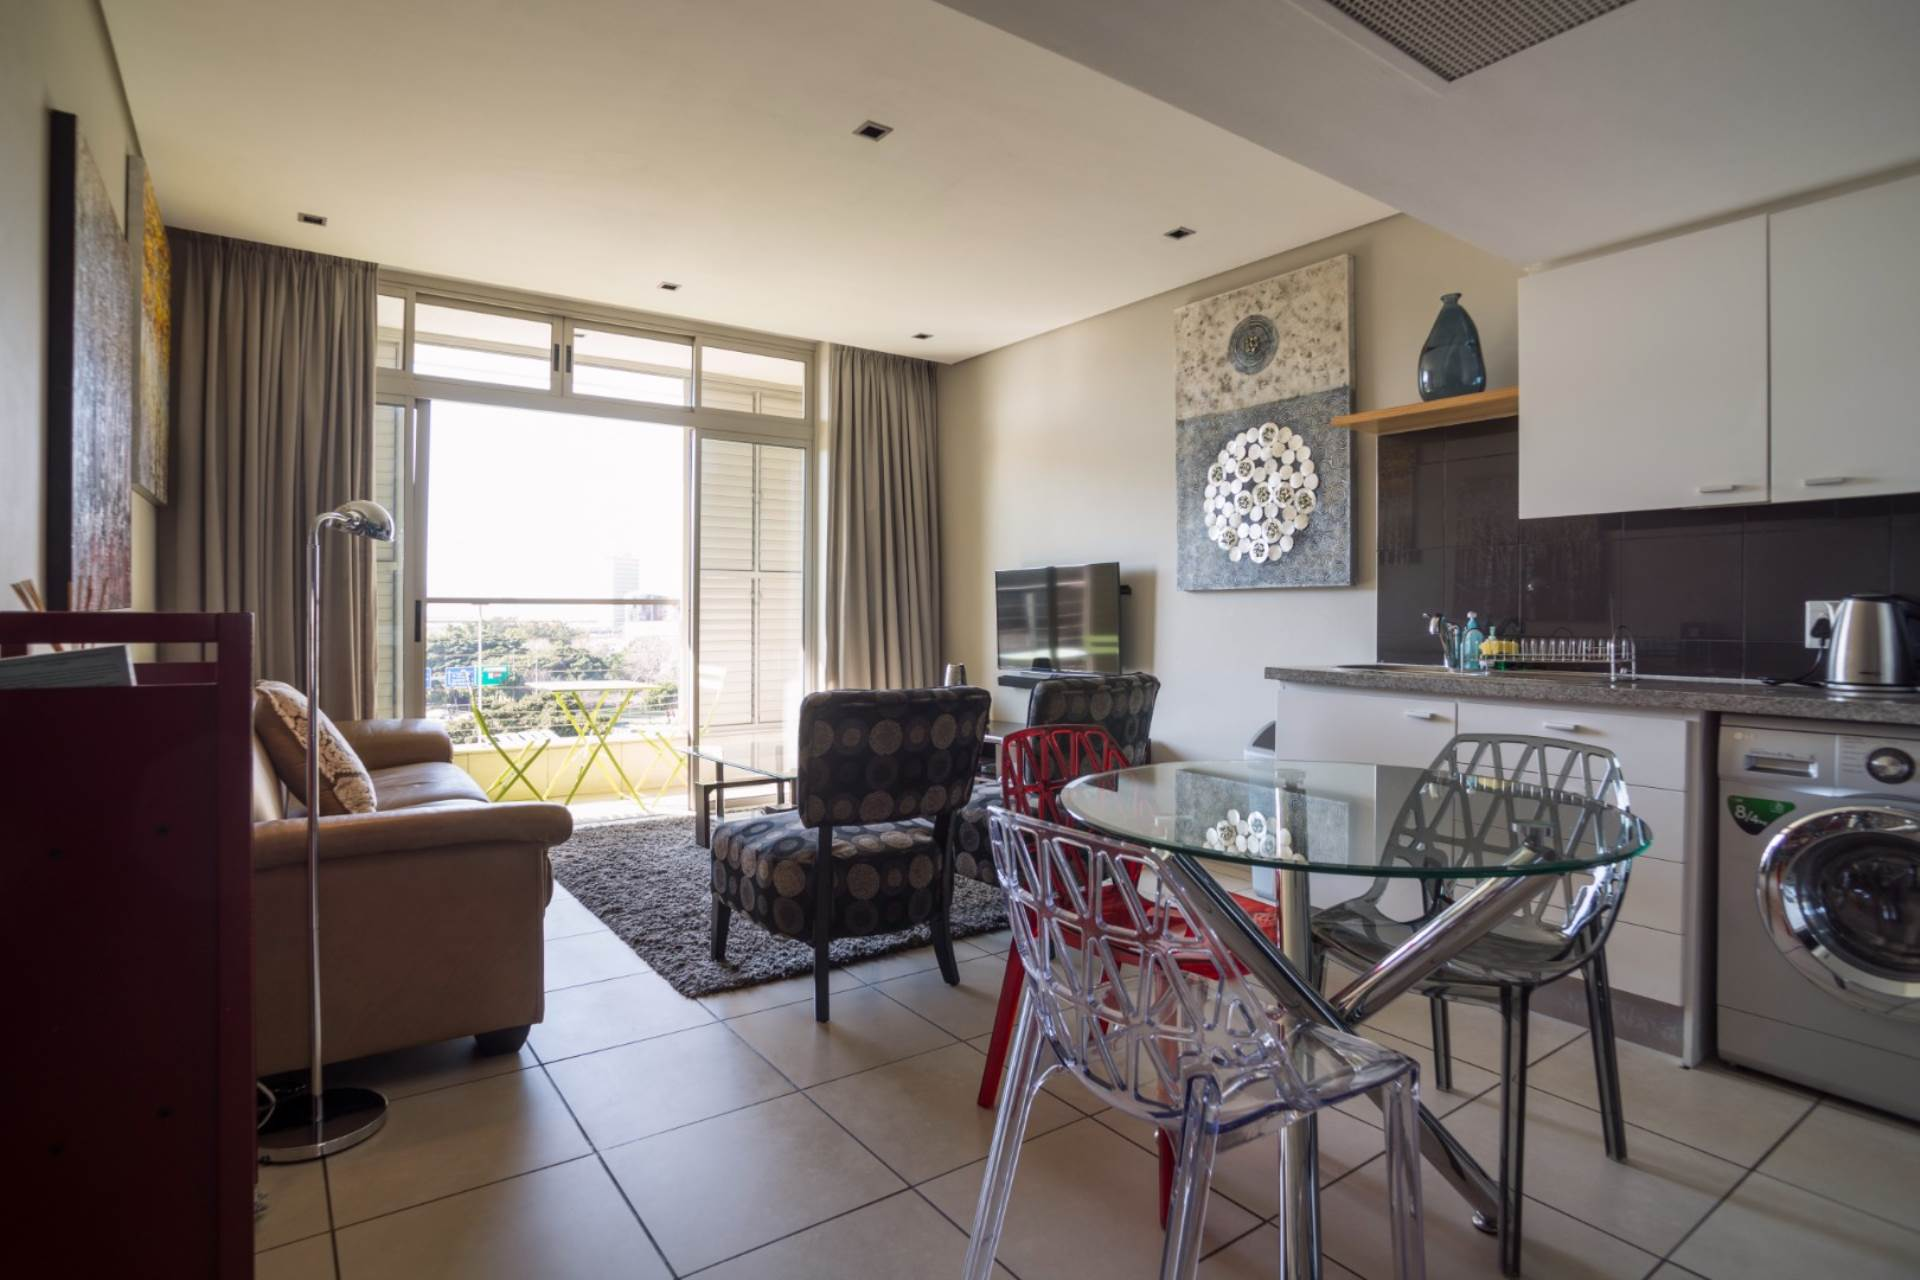 De Waterkant property for sale. Ref No: 13562039. Picture no 3